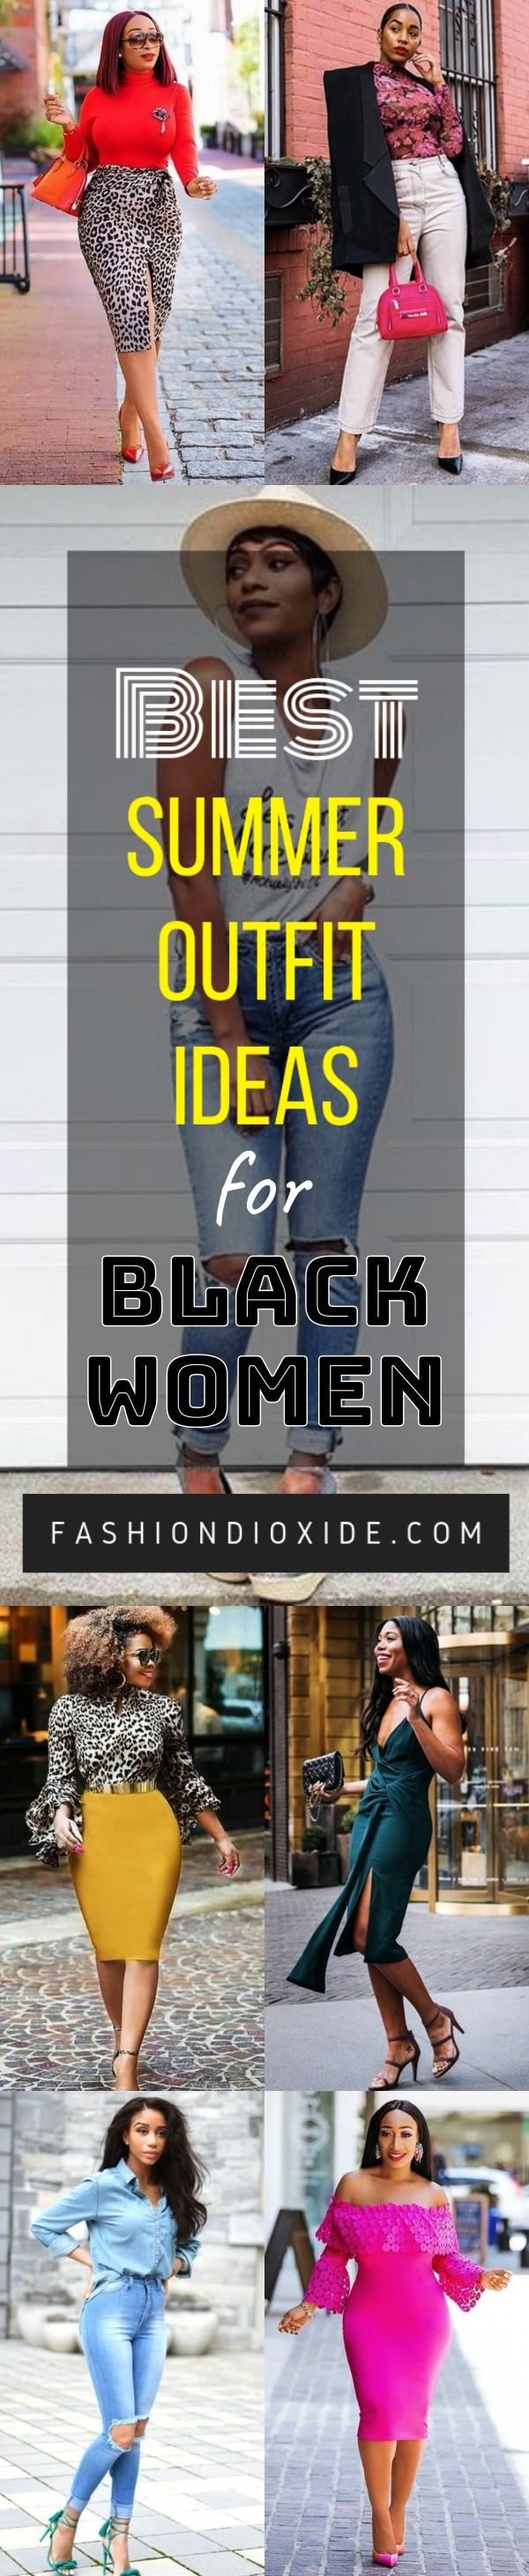 45 Best Summer Outfit Ideas For Black Women